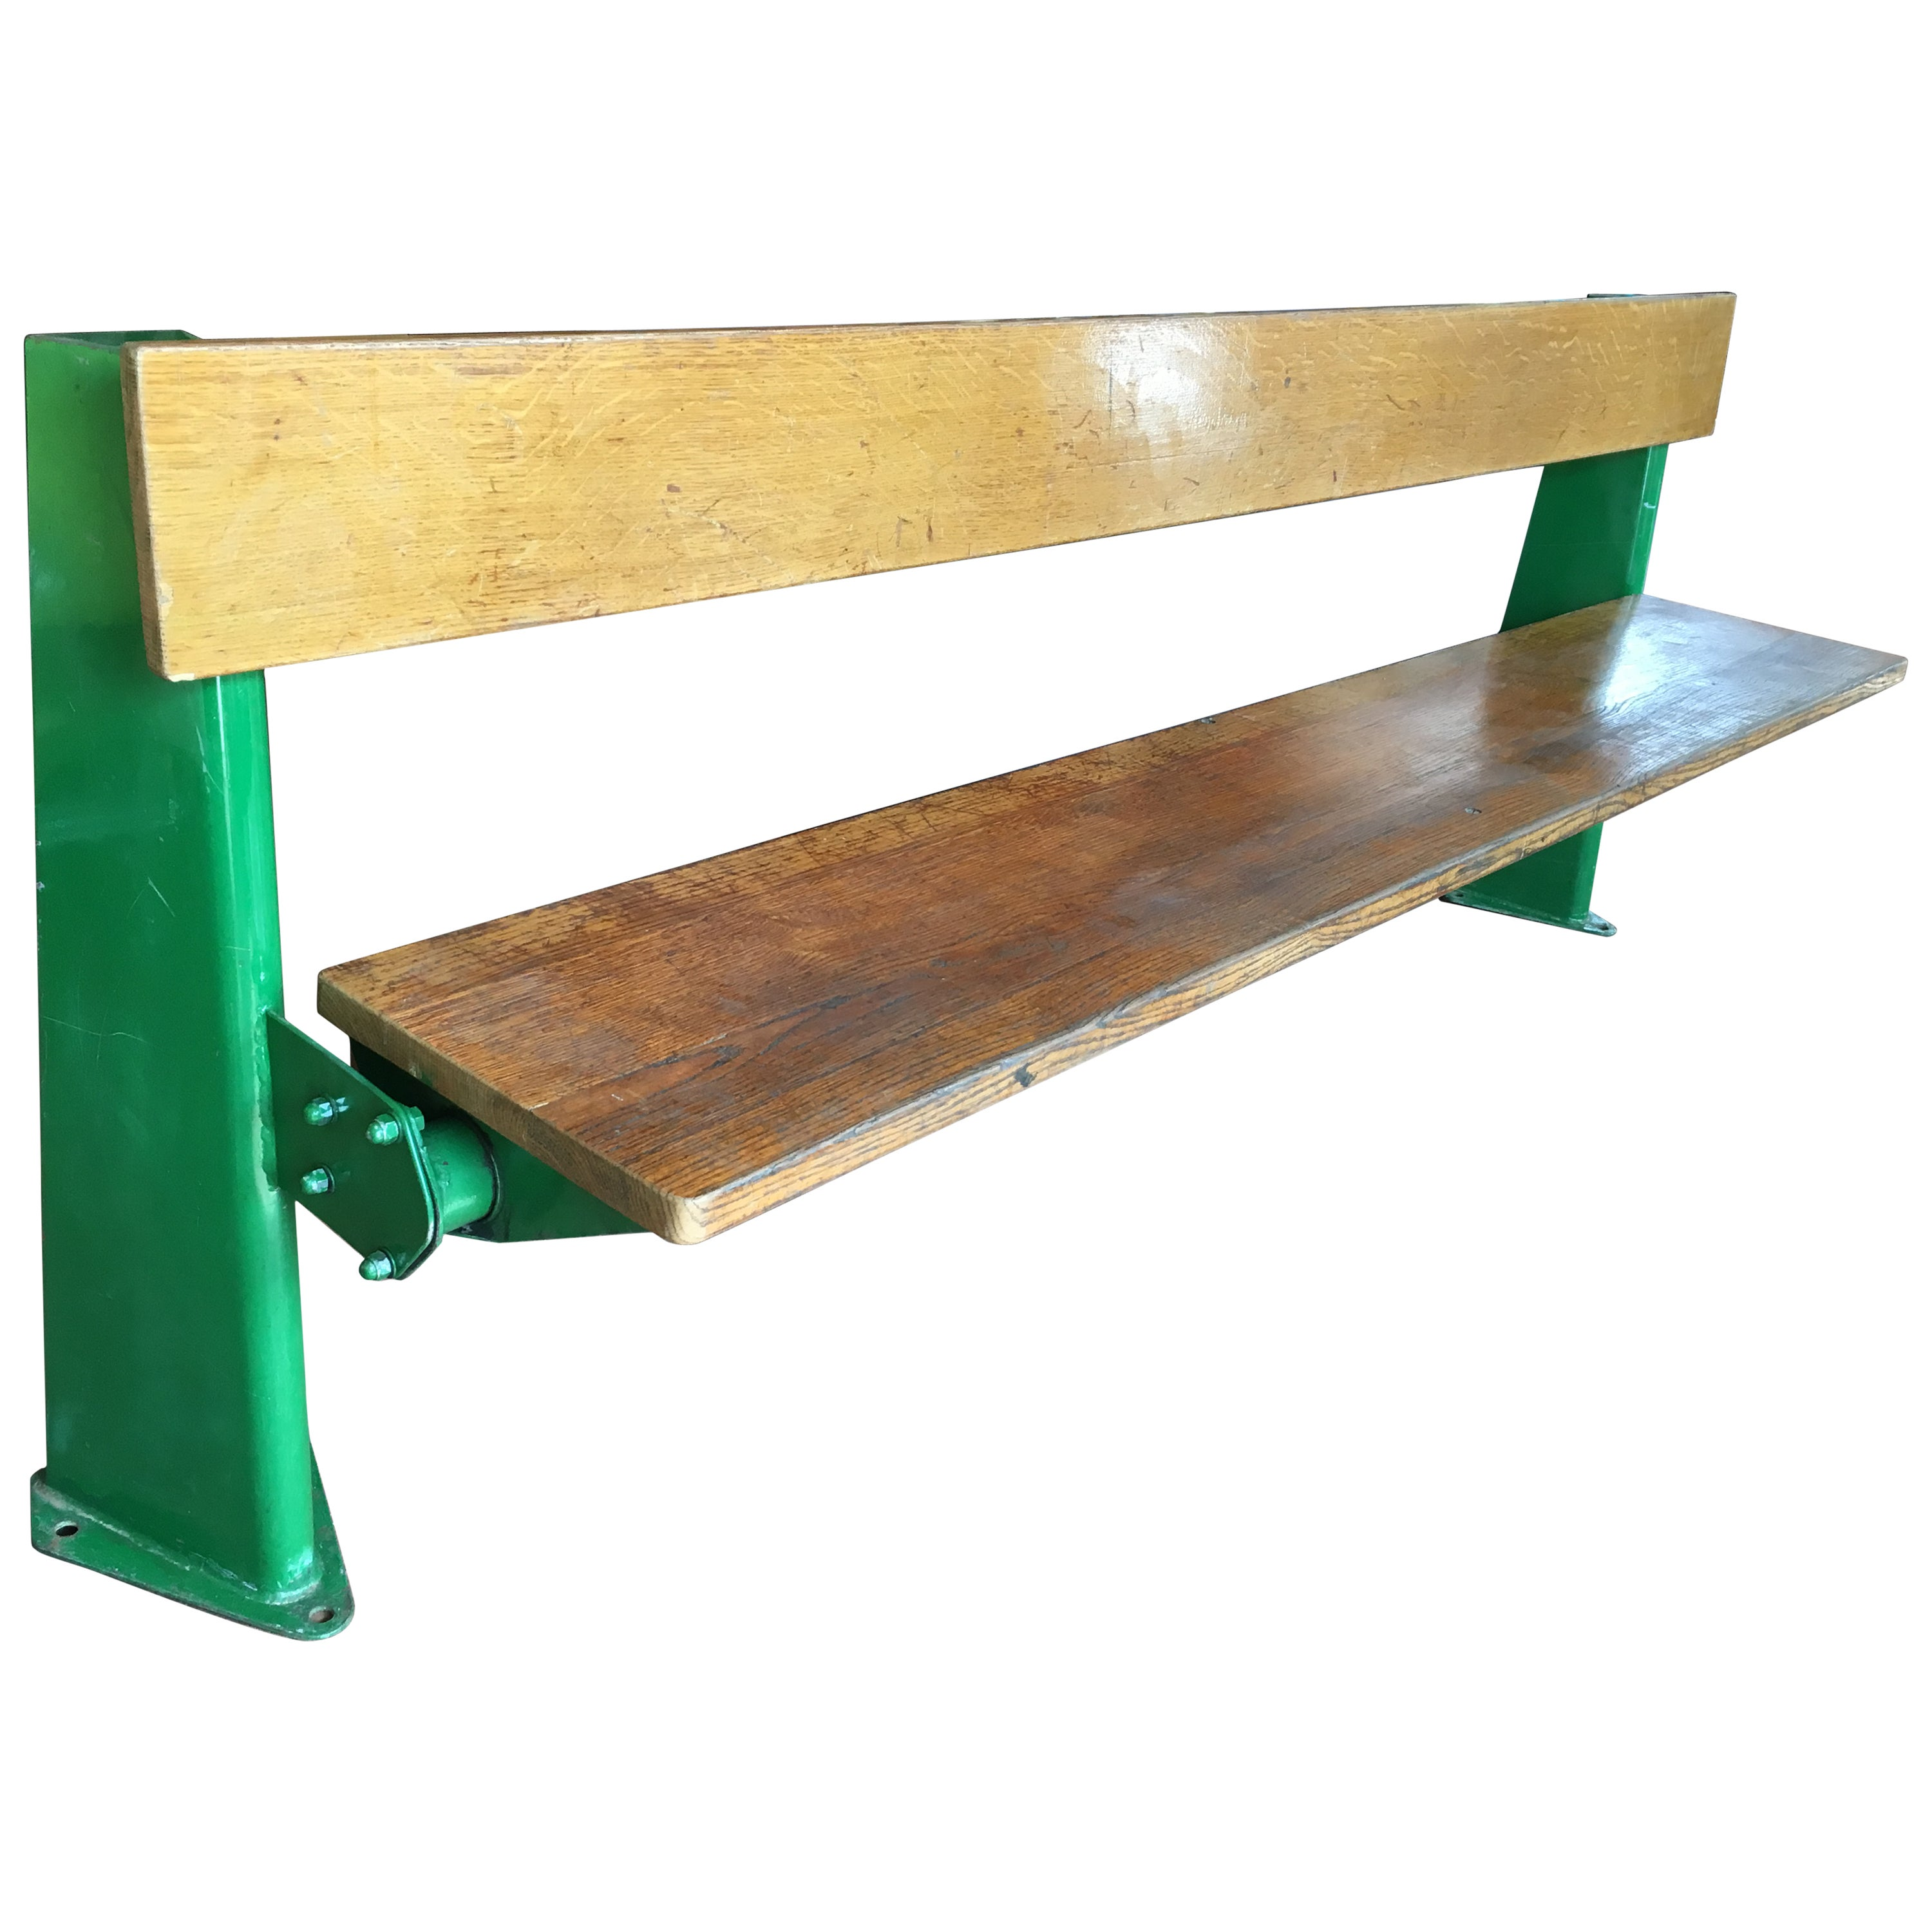 Bench by Jean Prouve, circa 1957